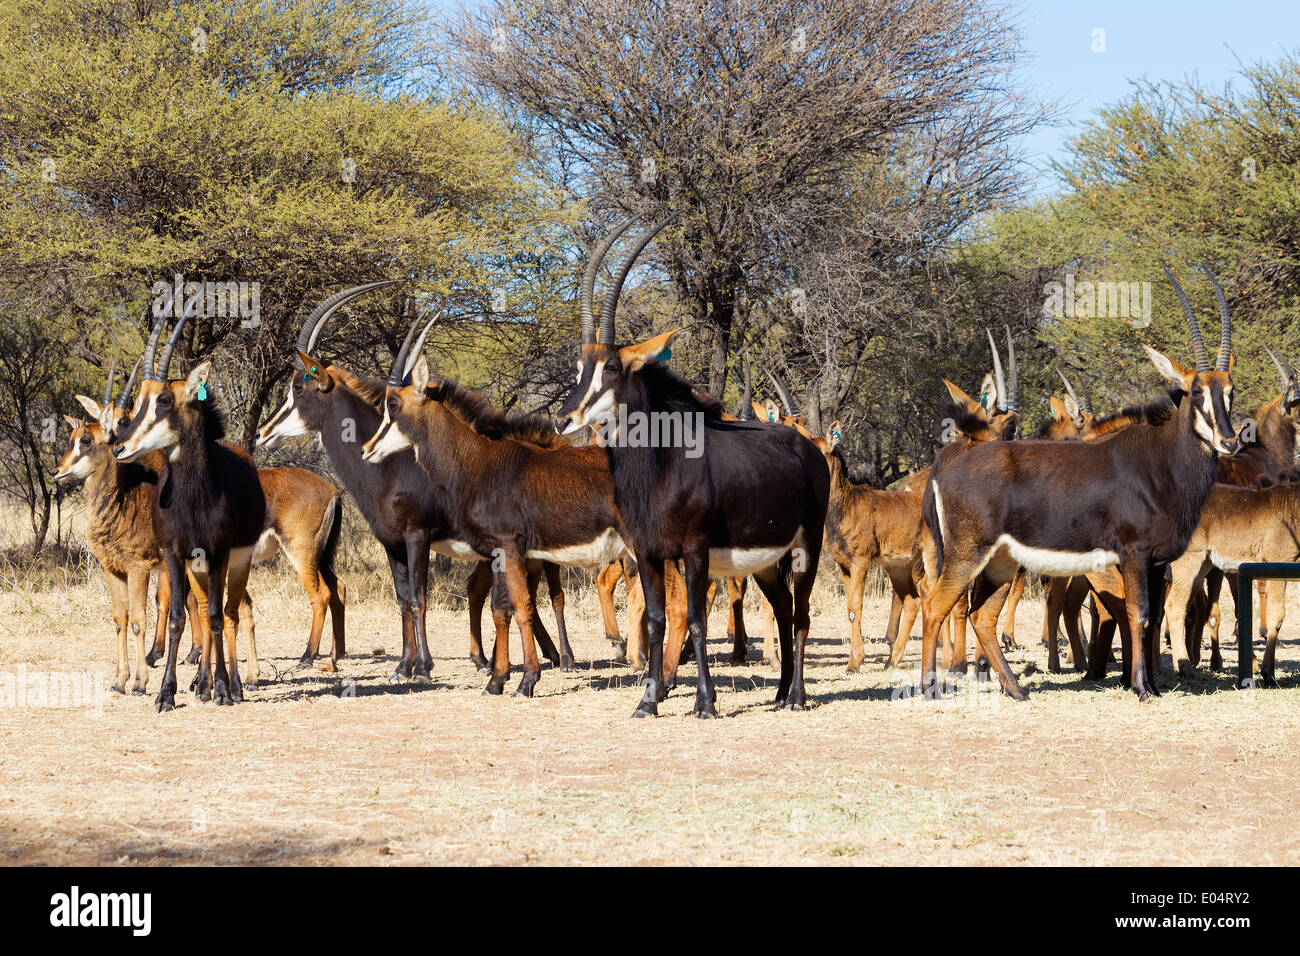 Small group of Sable antelope (Hippotragus niger).South Africa - Stock Image